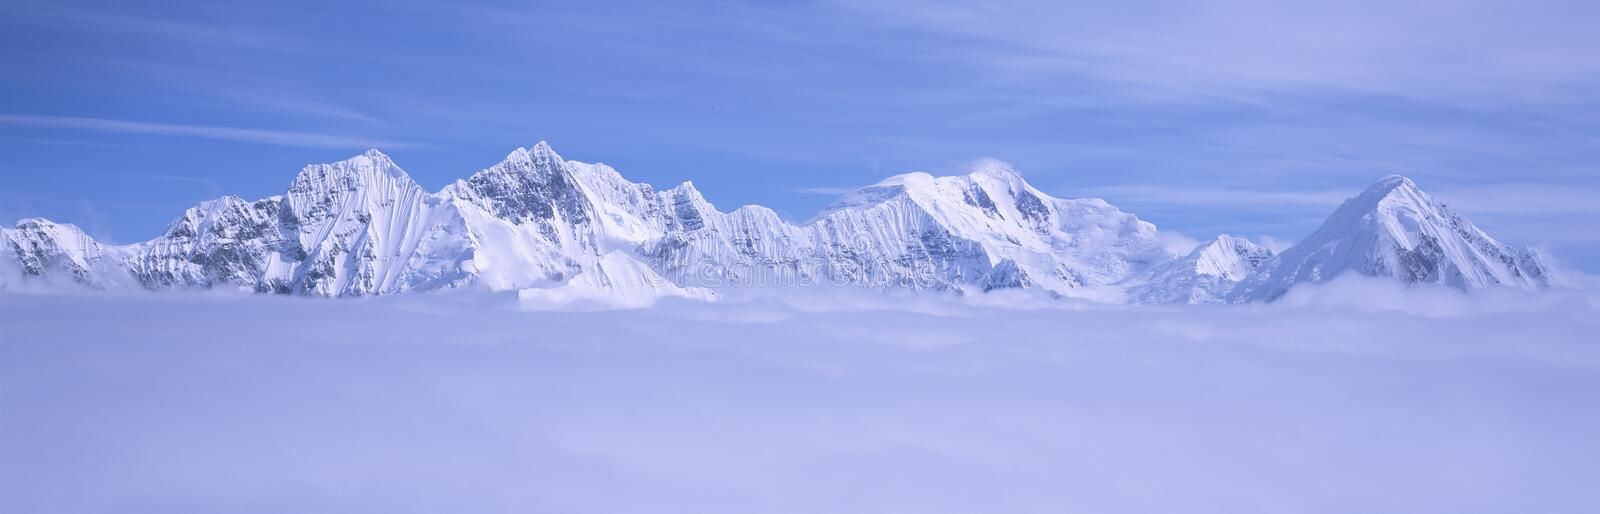 Mountains And Glaciers Royalty Free Stock Image